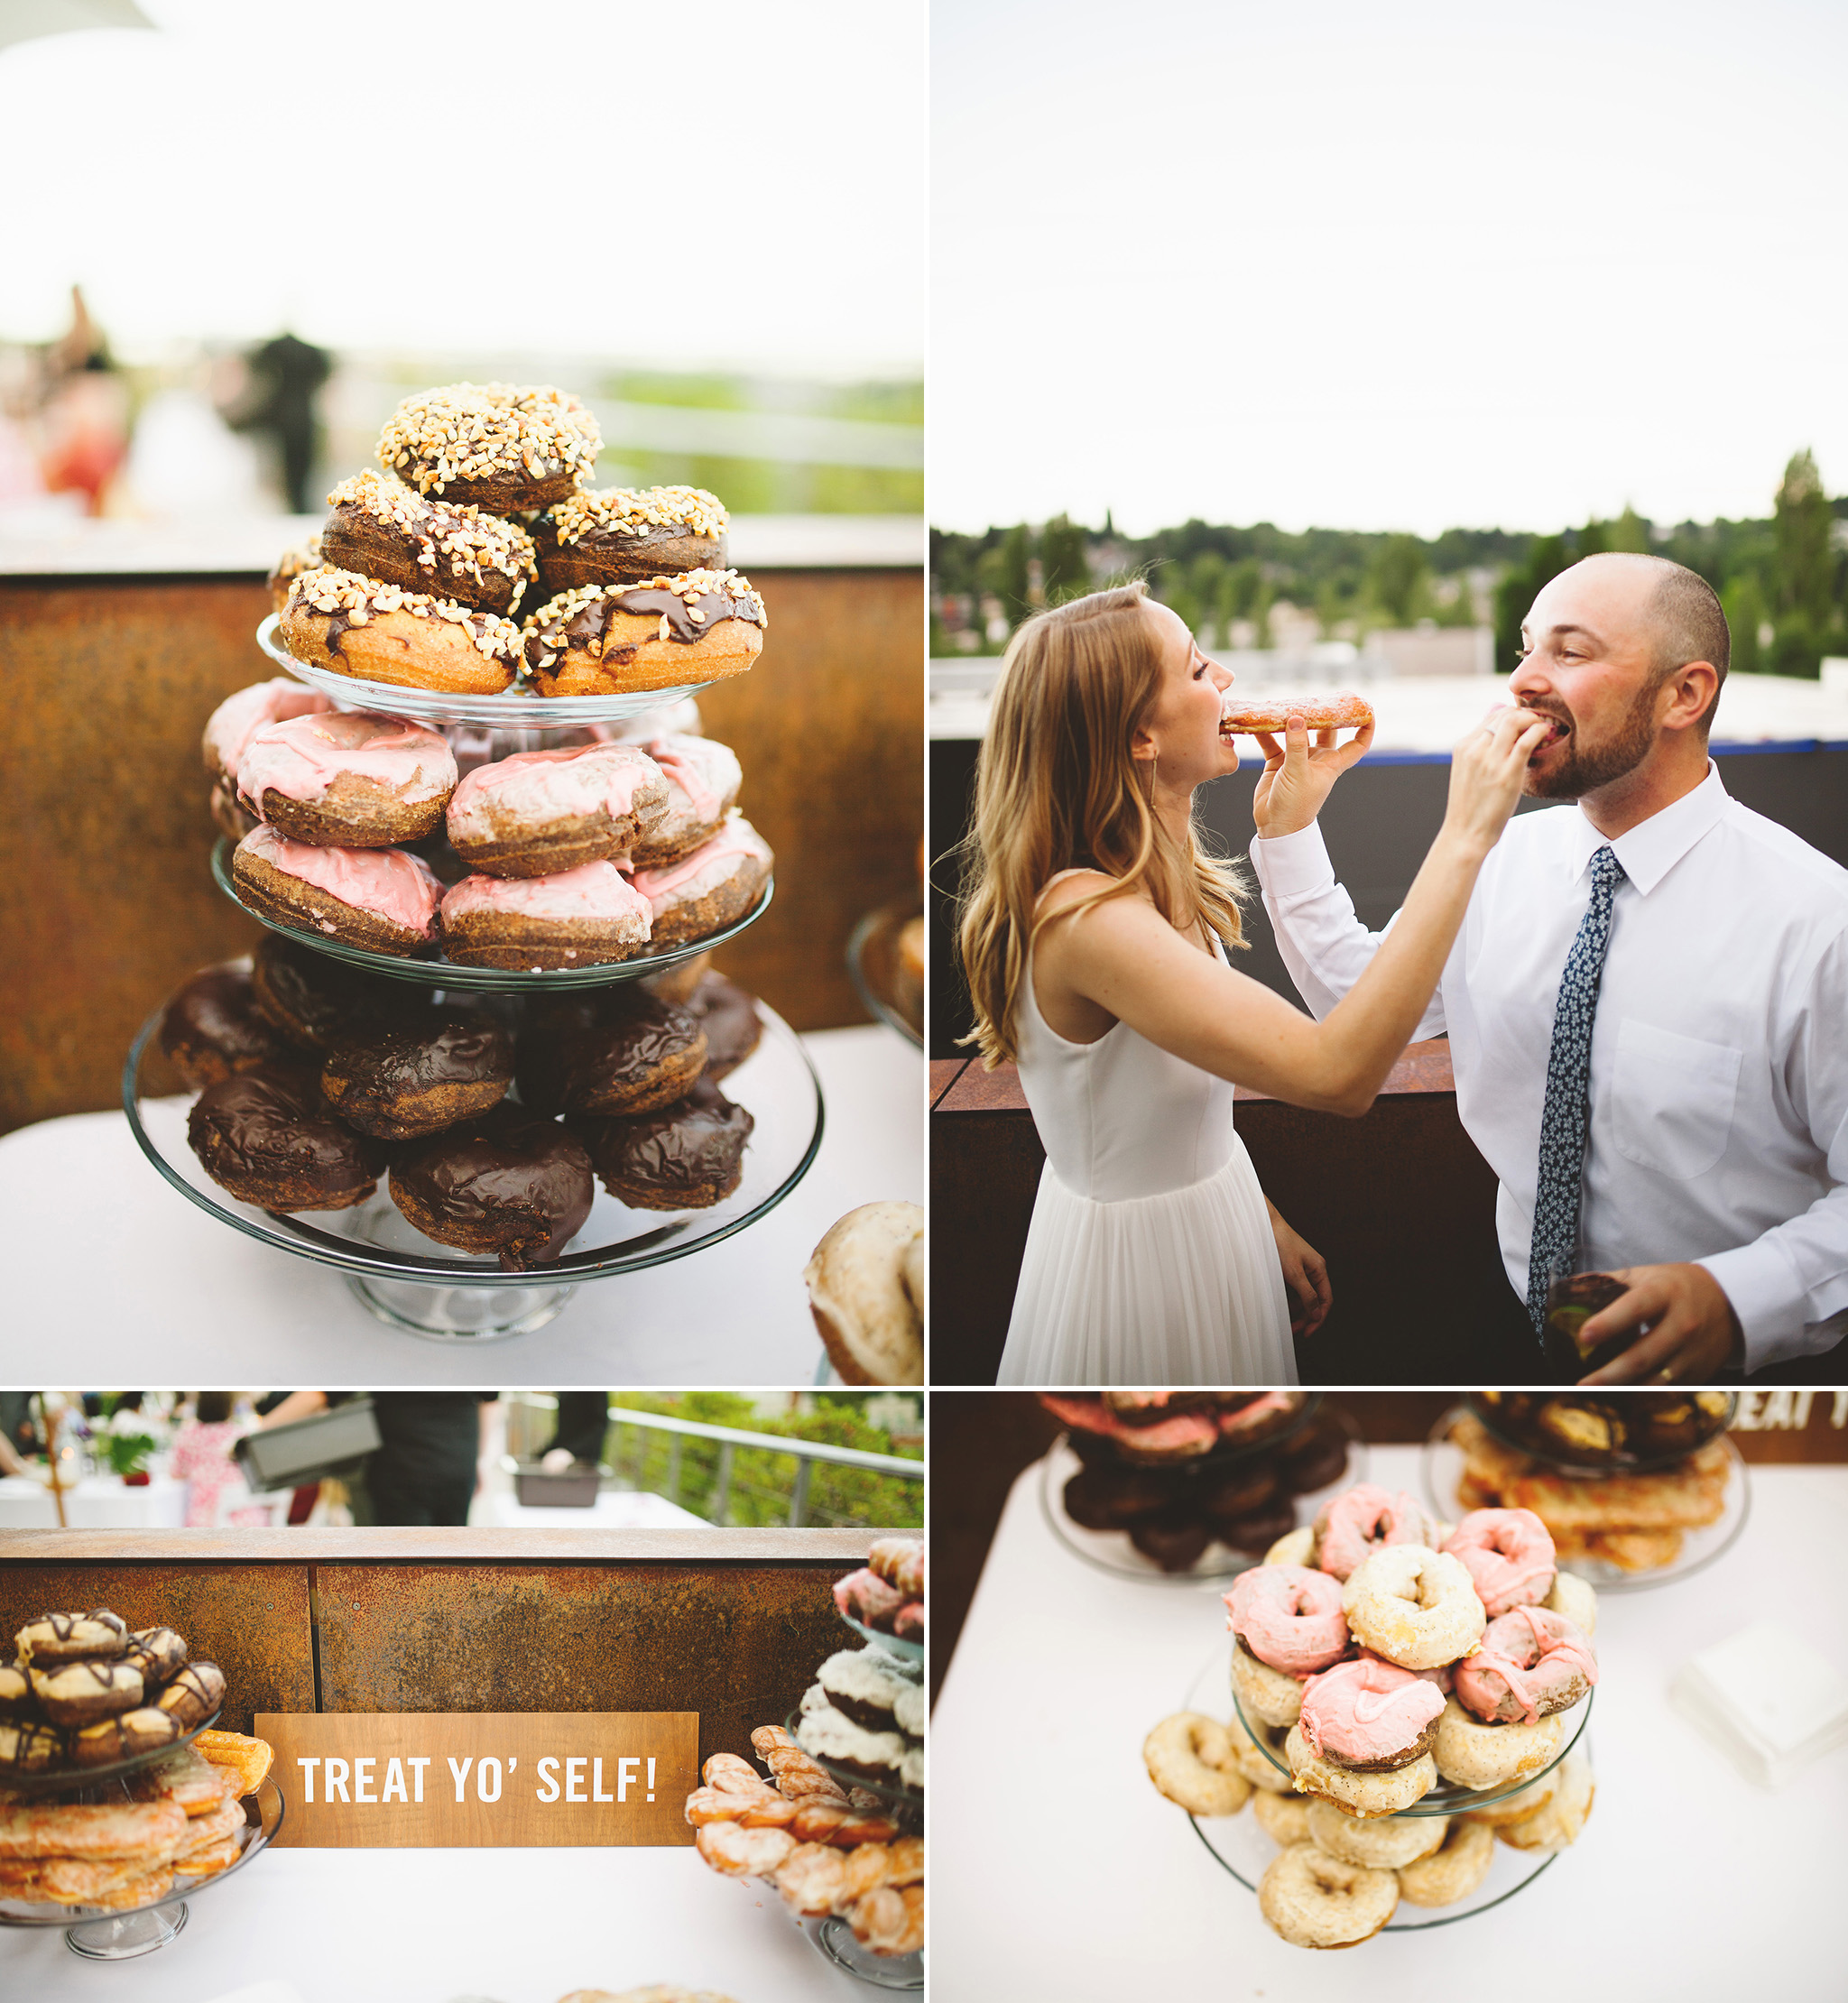 doughnuts instead of wedding cake